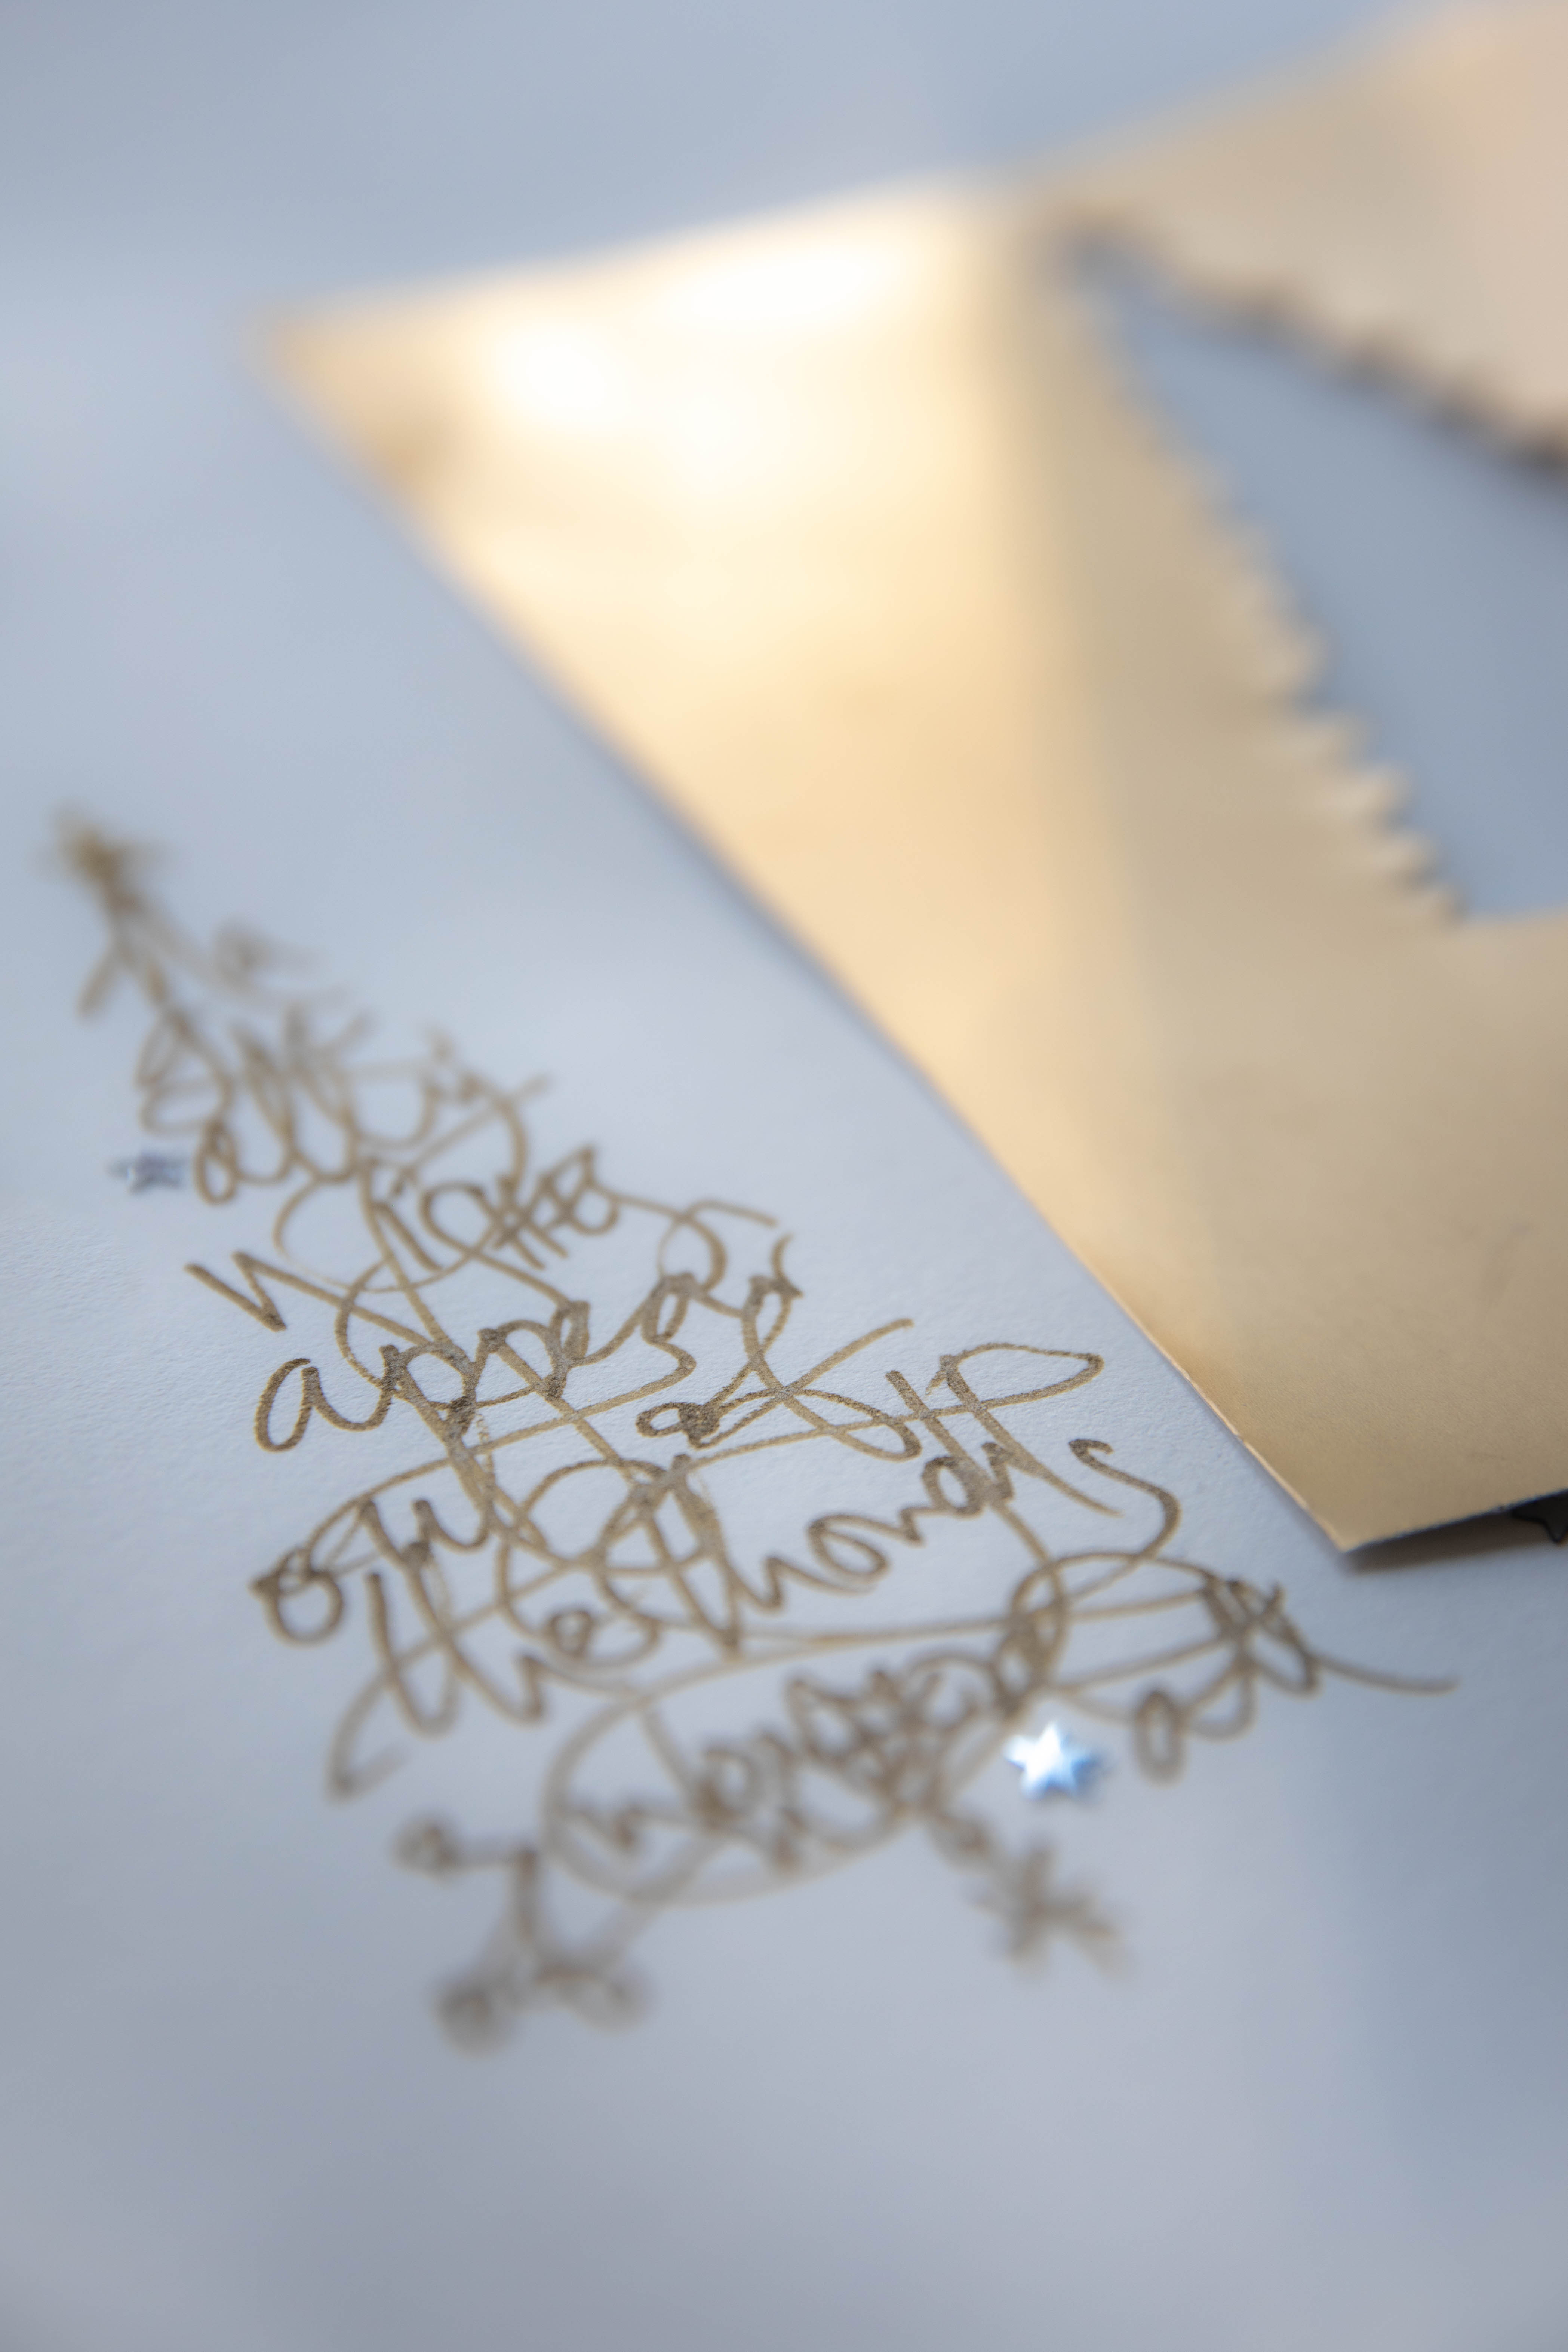 cutting tree and golden writing